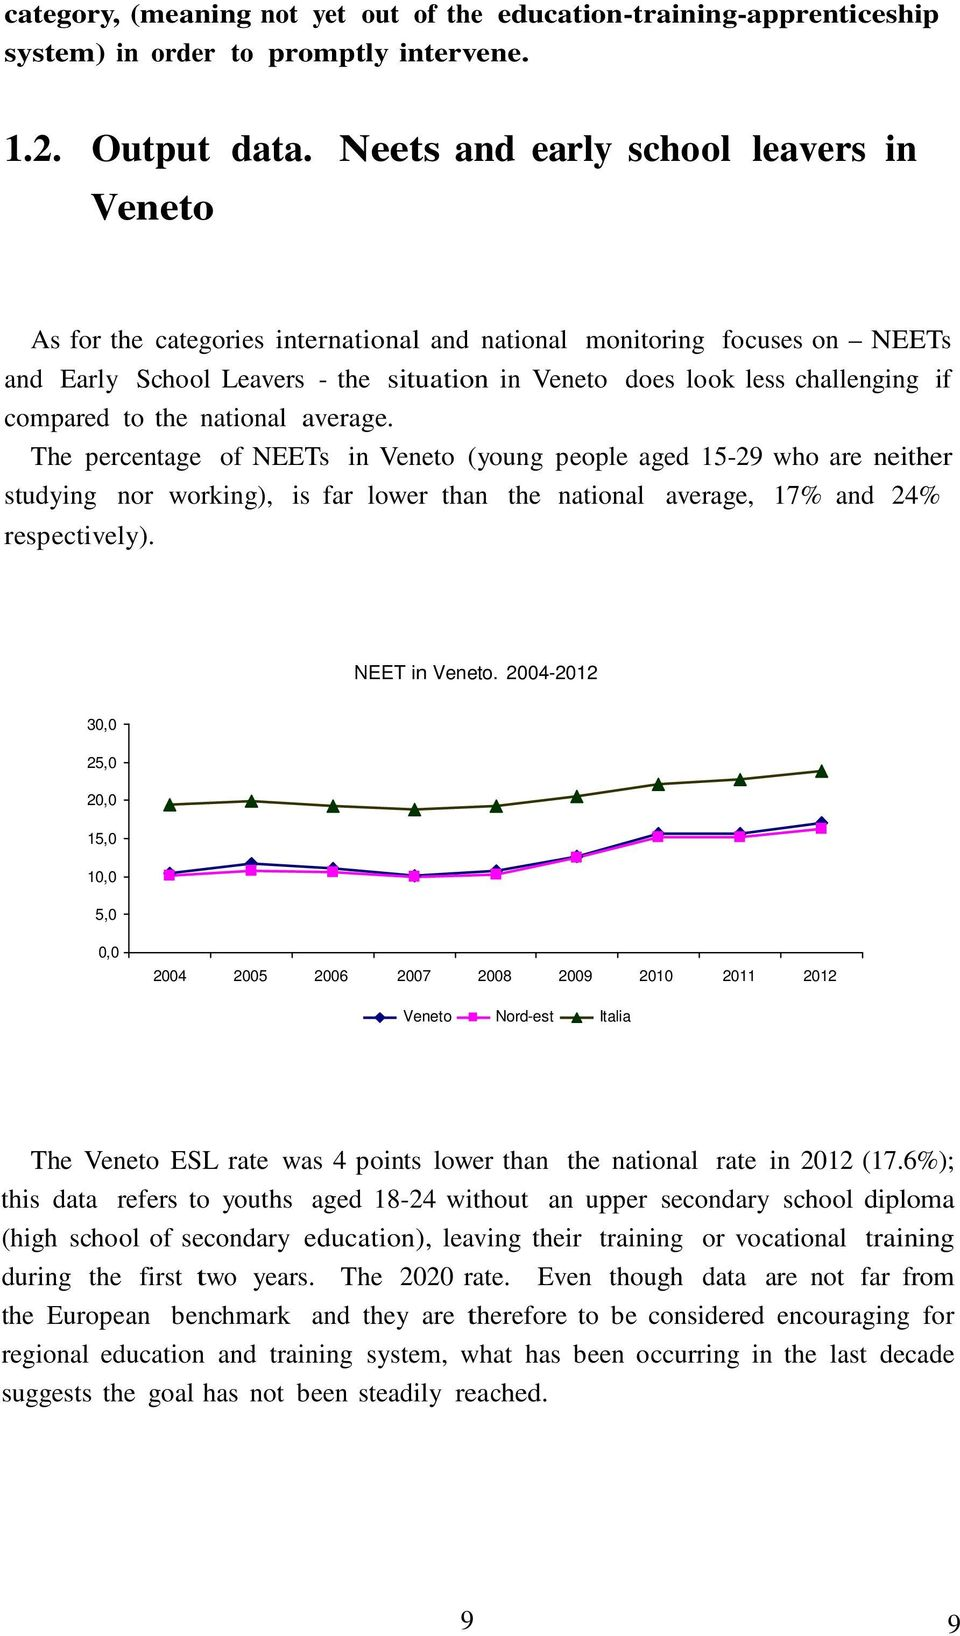 compared to the national average. The percentage of NEETs in Veneto (young people aged 15-29 who are neither studying nor working), is far lower than the national average, 17% and 24% respectively).